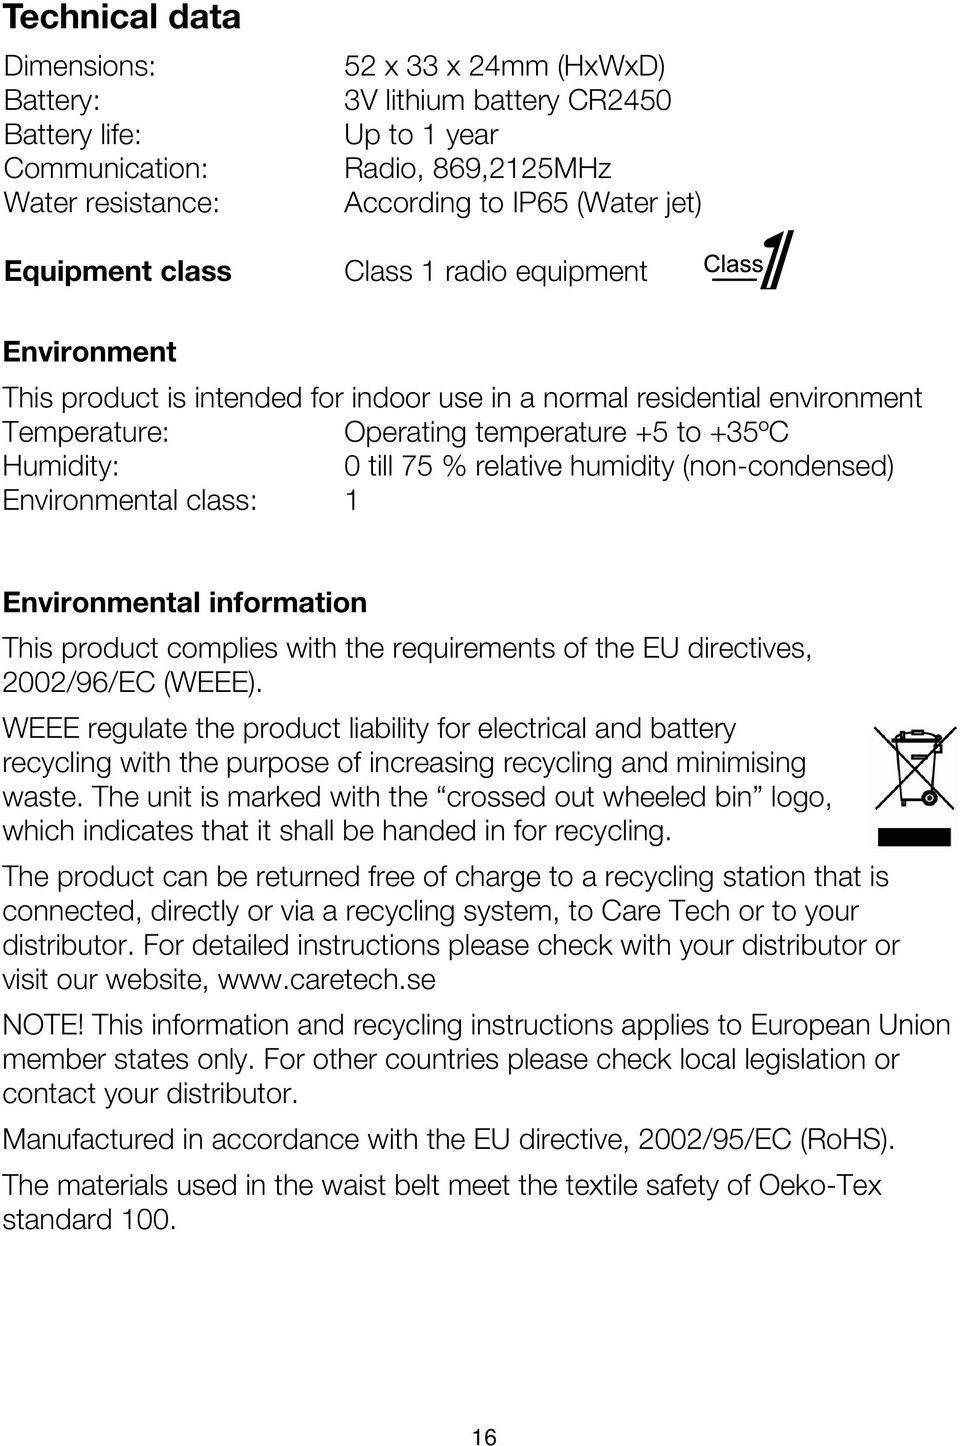 relative humidity (non-condensed) Environmental class: 1 Environmental information This product complies with the requirements of the EU directives, 2002/96/EC (WEEE).